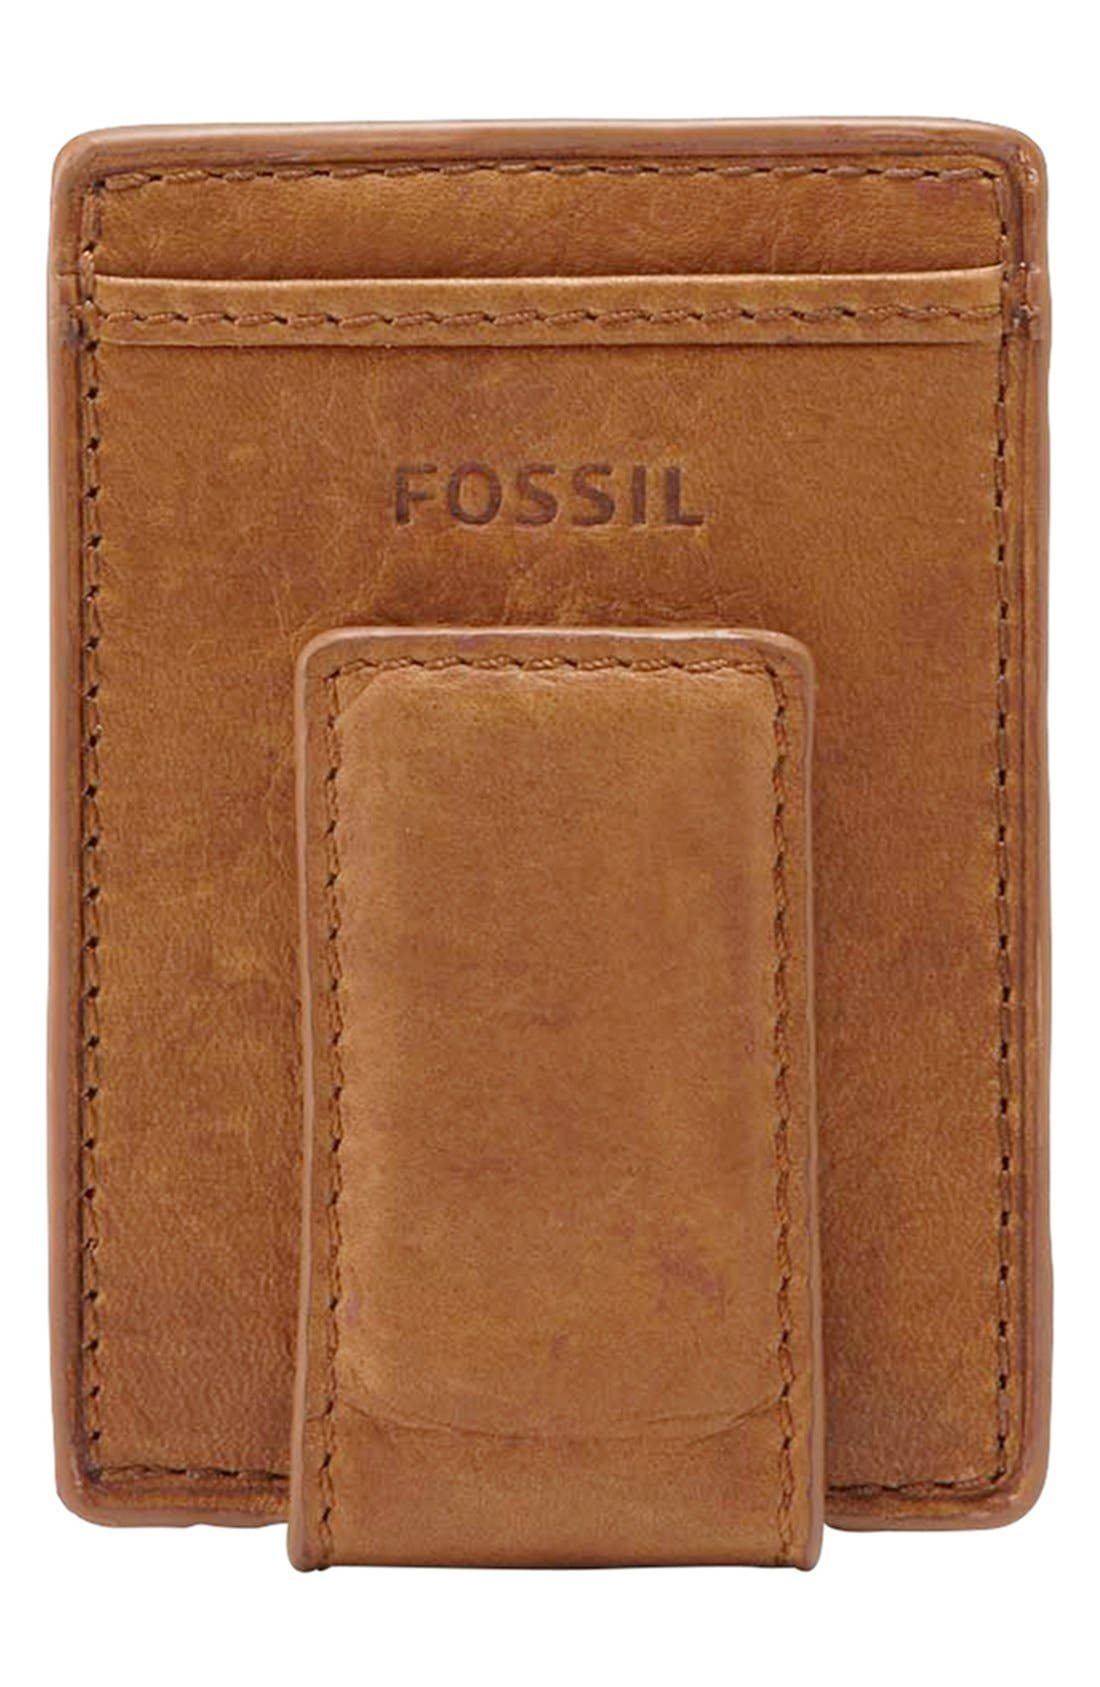 Alternate Image 1 Selected - Fossil 'Ingram' Leather Magnetic Money Clip Card Case